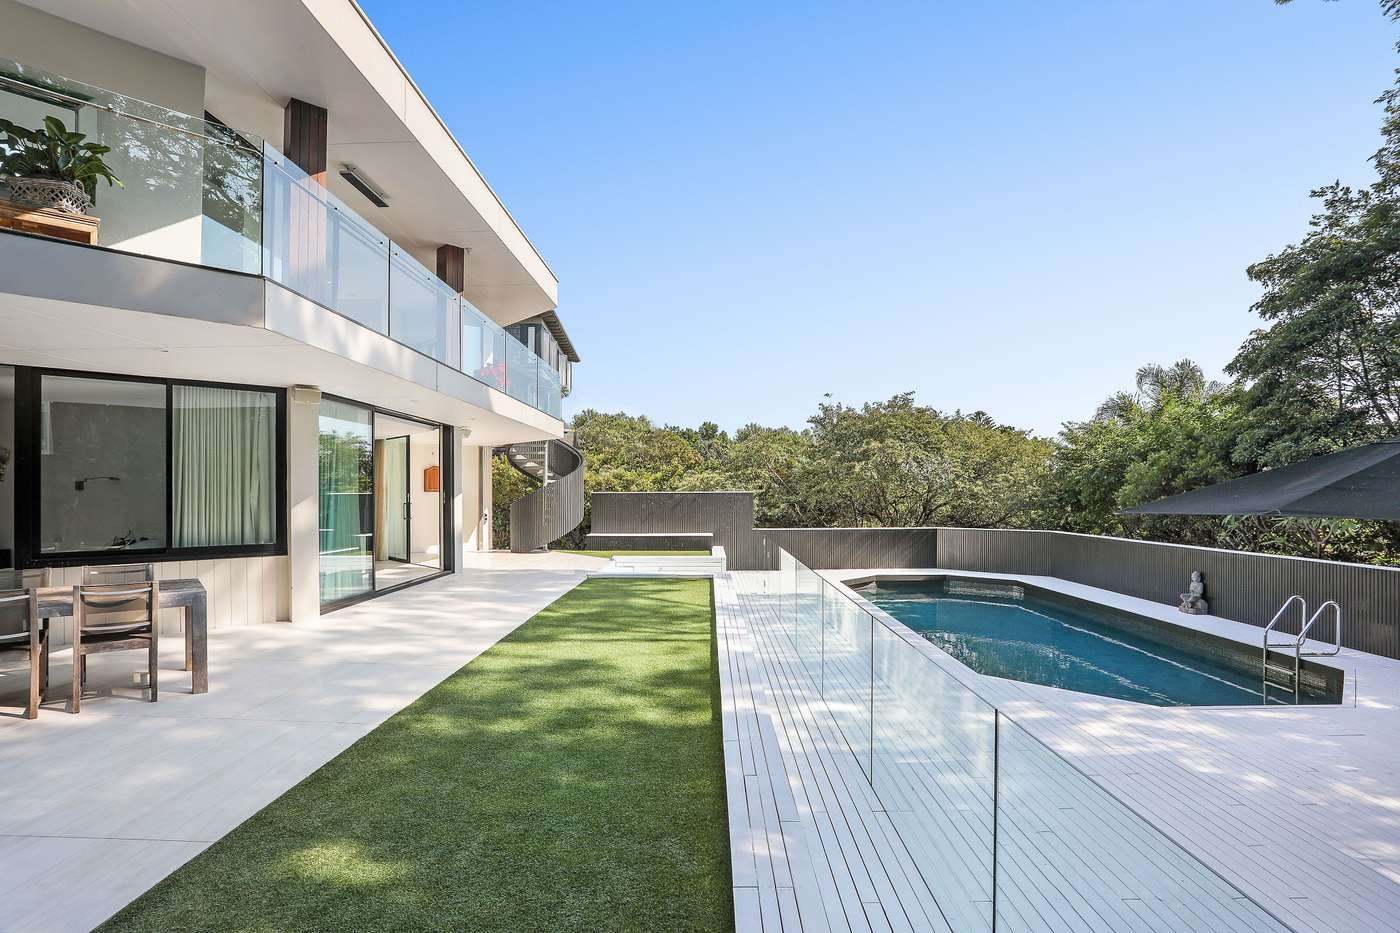 Main view of Homely house listing, 20 Cranbrook Road, Bellevue Hill, NSW 2023